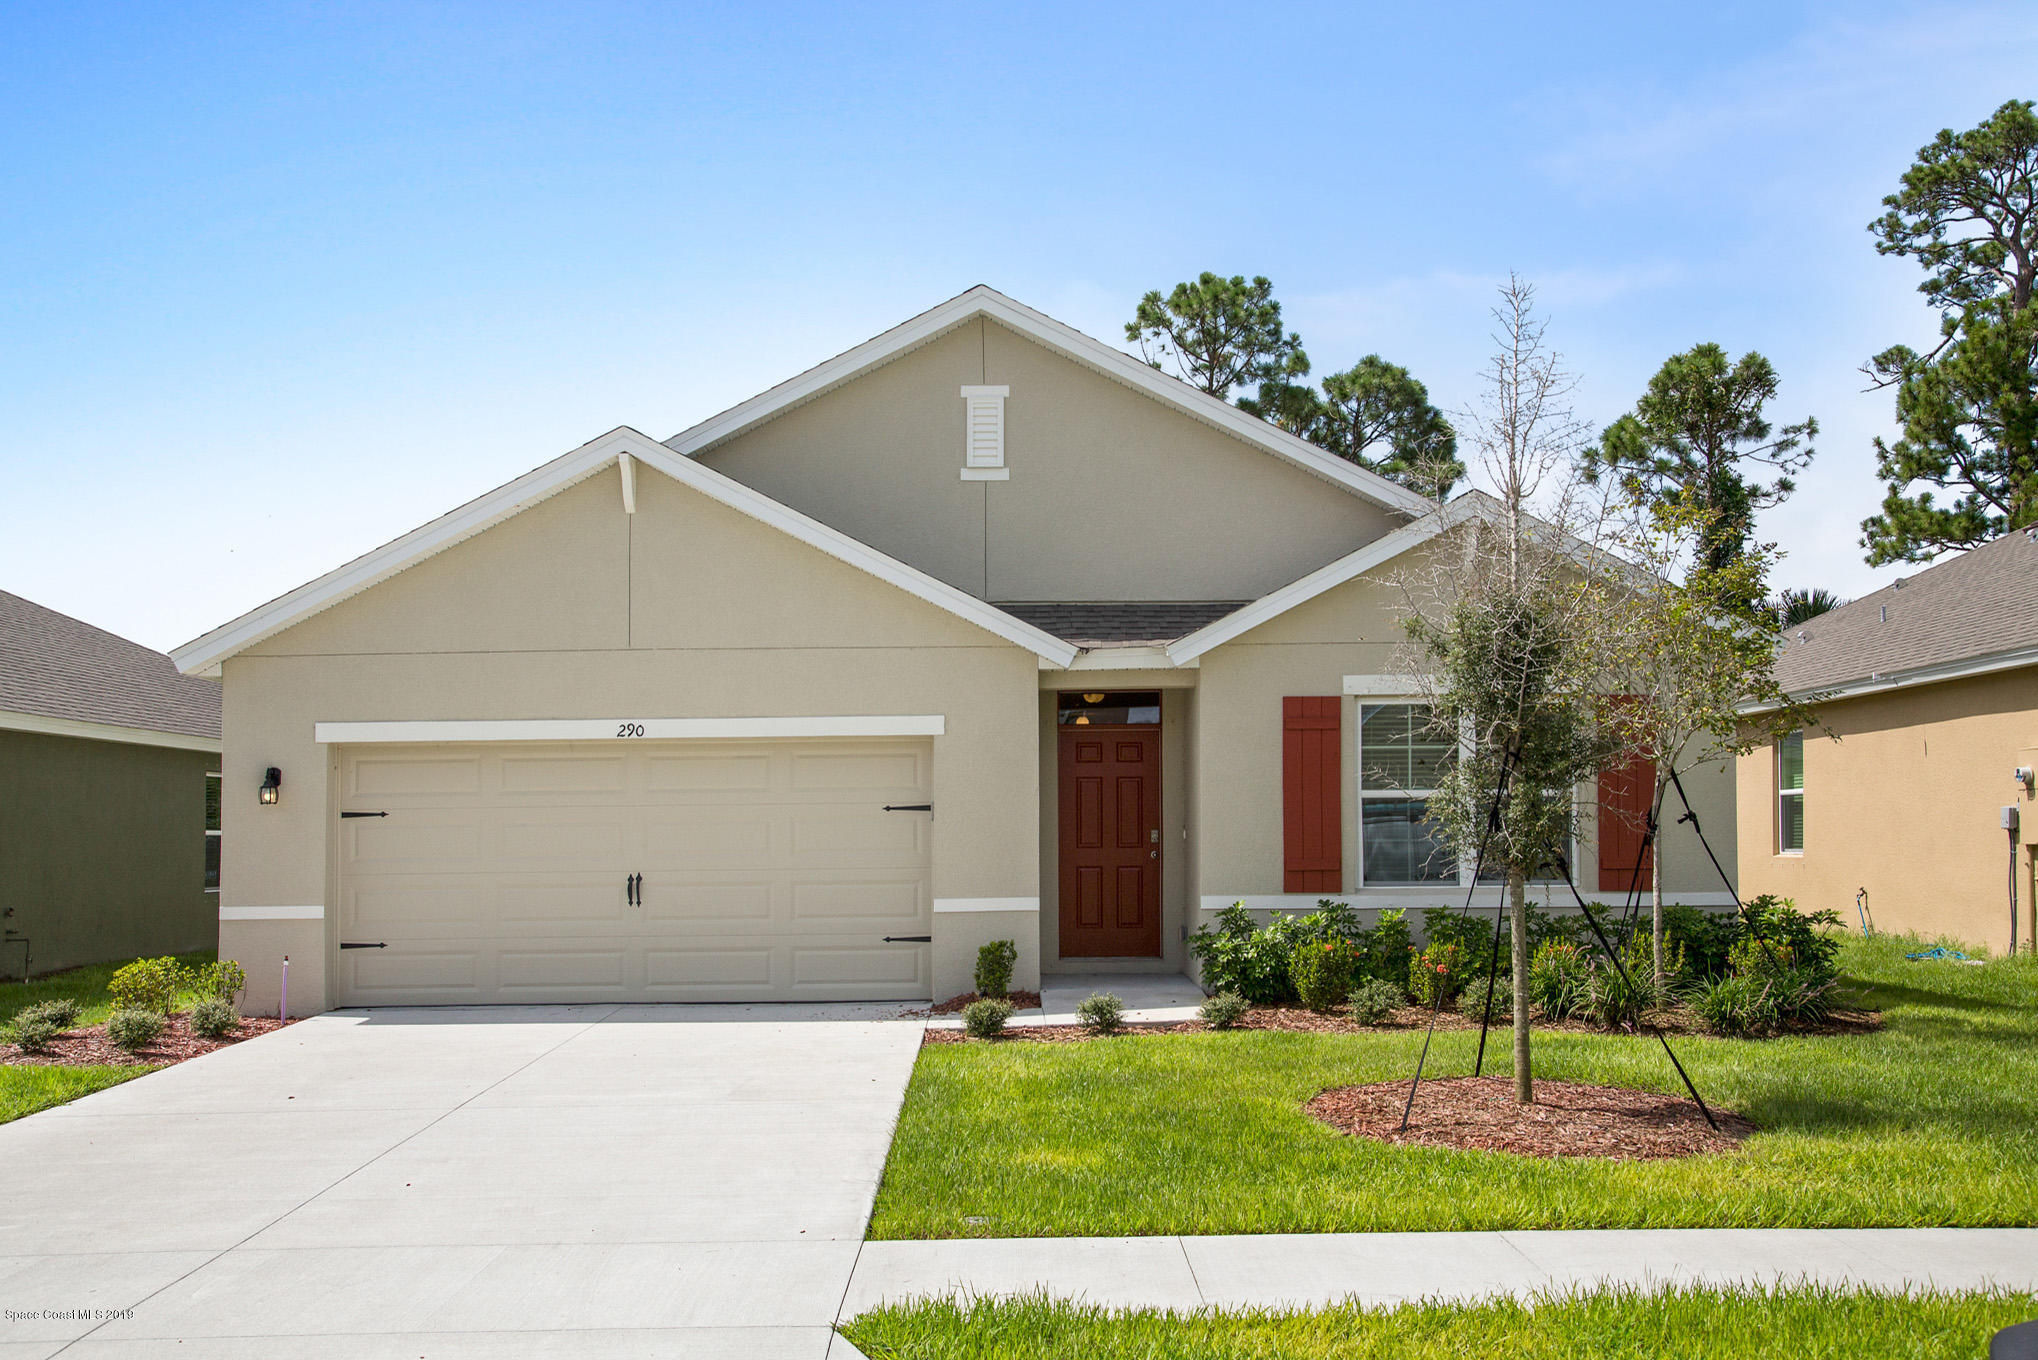 Single Family Homes for Rent at 290 Forest Trace Titusville, Florida 32780 United States